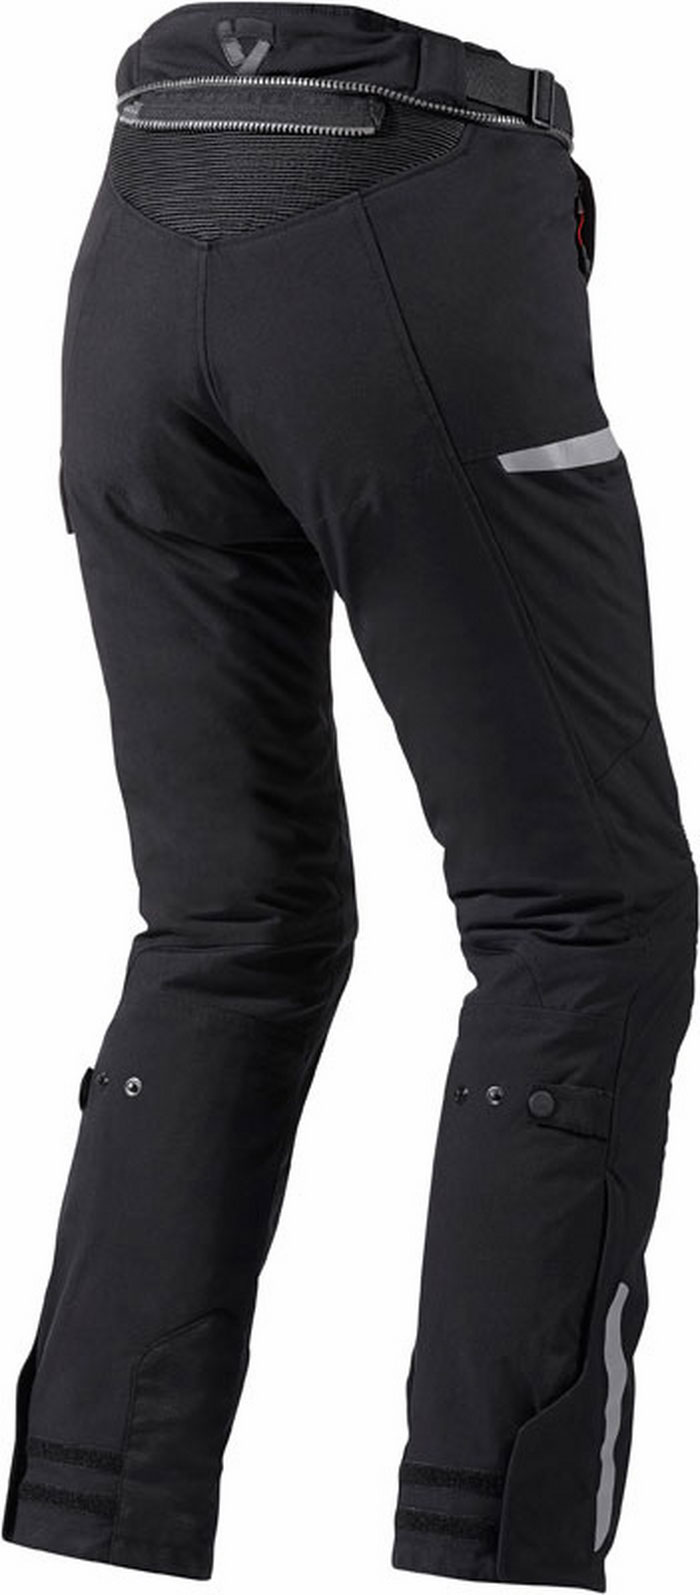 Pantaloni moto donna Rev'It Sand Ladies Nero Allungato